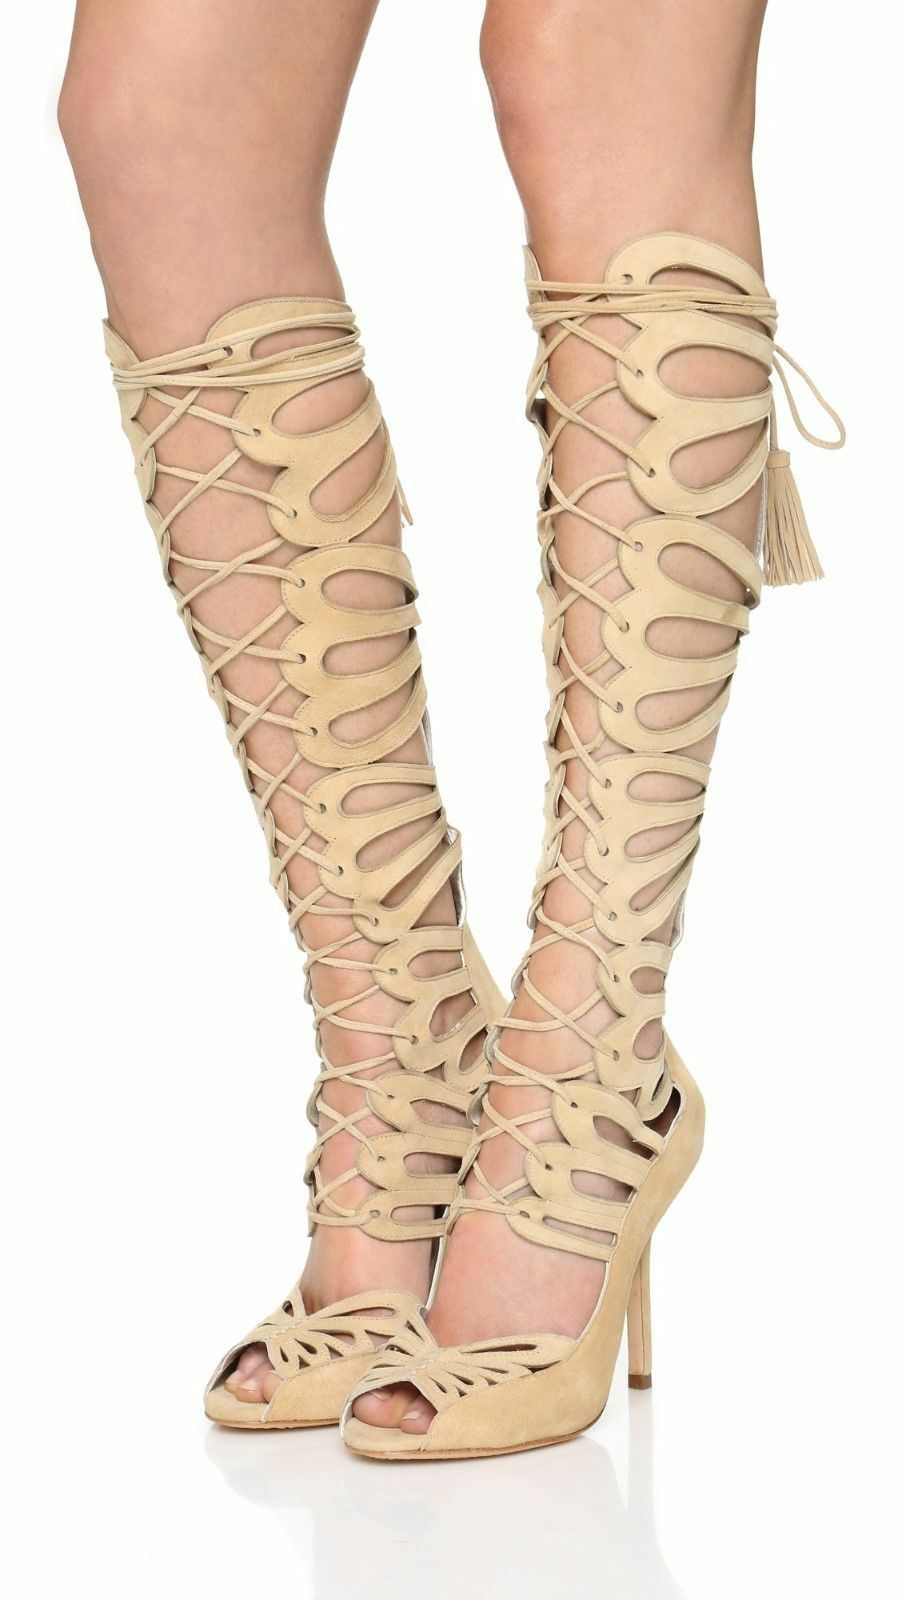 Brand New Alice+Olivia Naomi Knee High Suede Gladiator Sandal 39.5 9.5 So Sexy